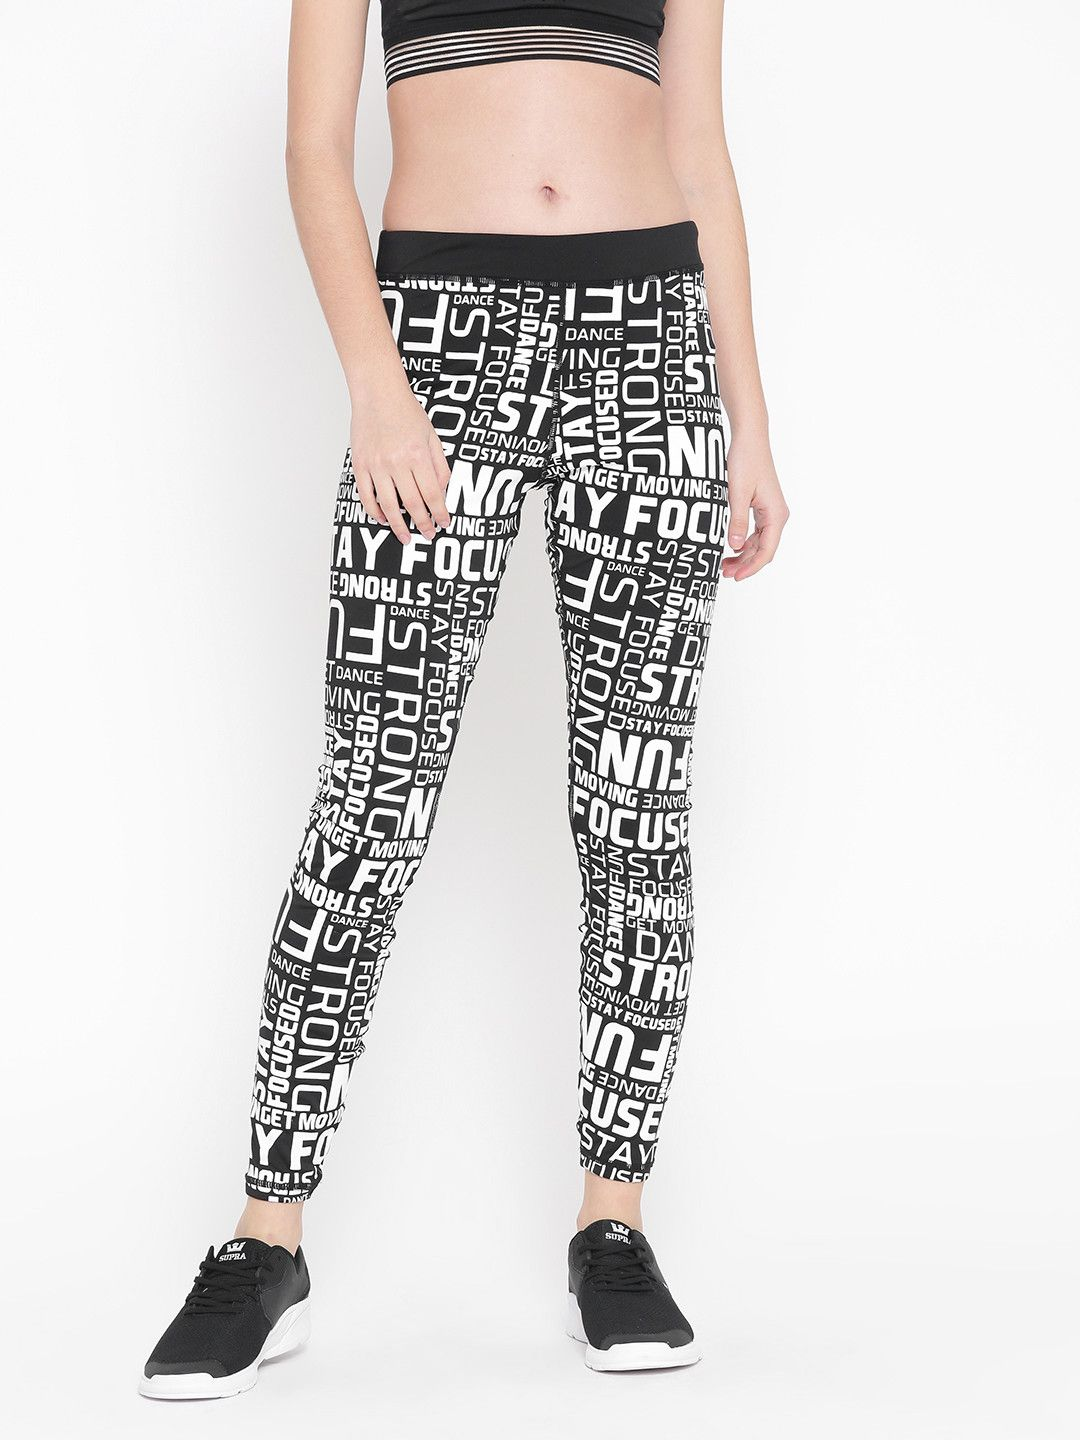 f8308c396ce9c0 Buy FOREVER 21 Black & White Text Print Tights - - Apparel for Women from FOREVER  21 at Rs. 1539 @looksgud